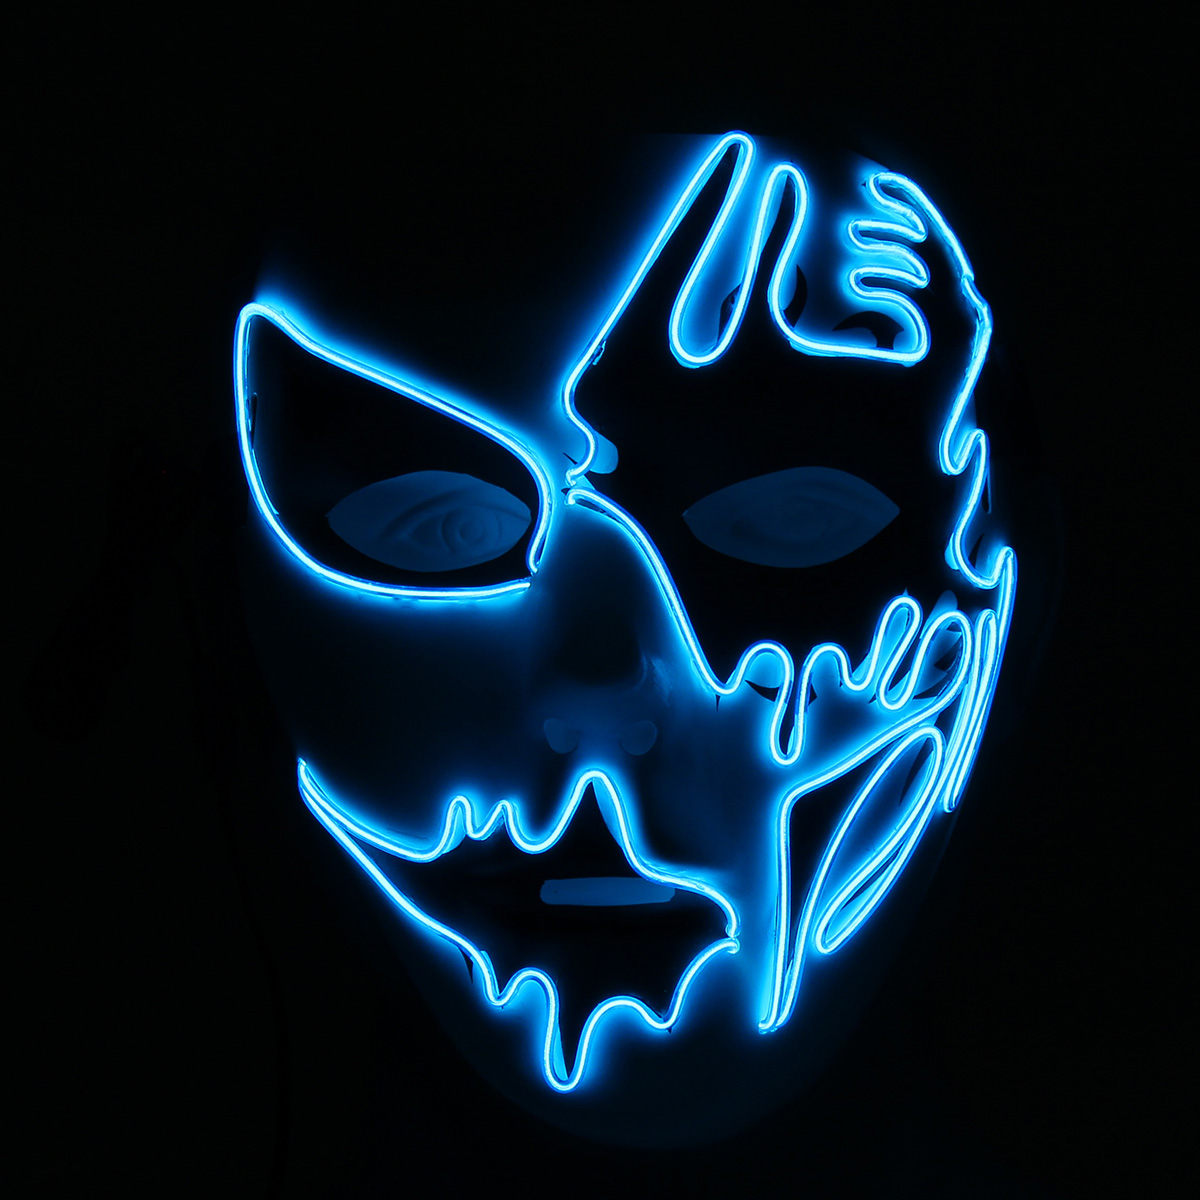 Halloween Mask LED Luminous Flashing Party Masks Light Up Dance Halloween Cosplay Props